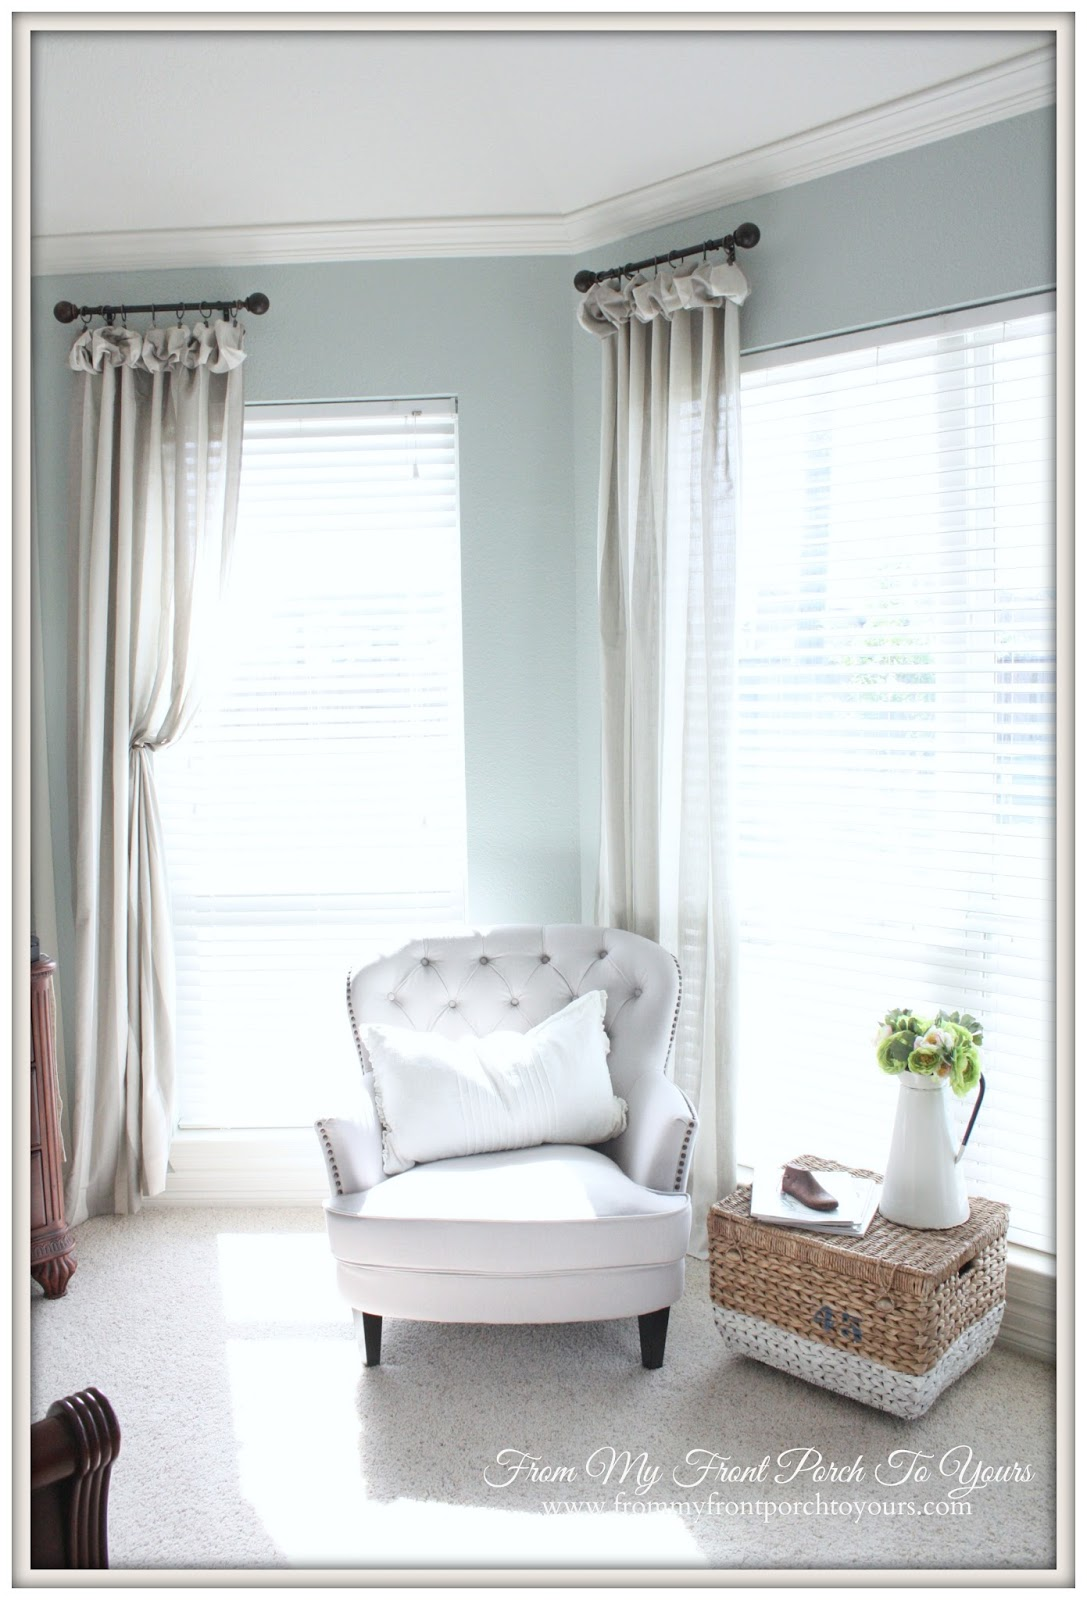 From My Front Porch To Yours- Bedroom Reading Nook